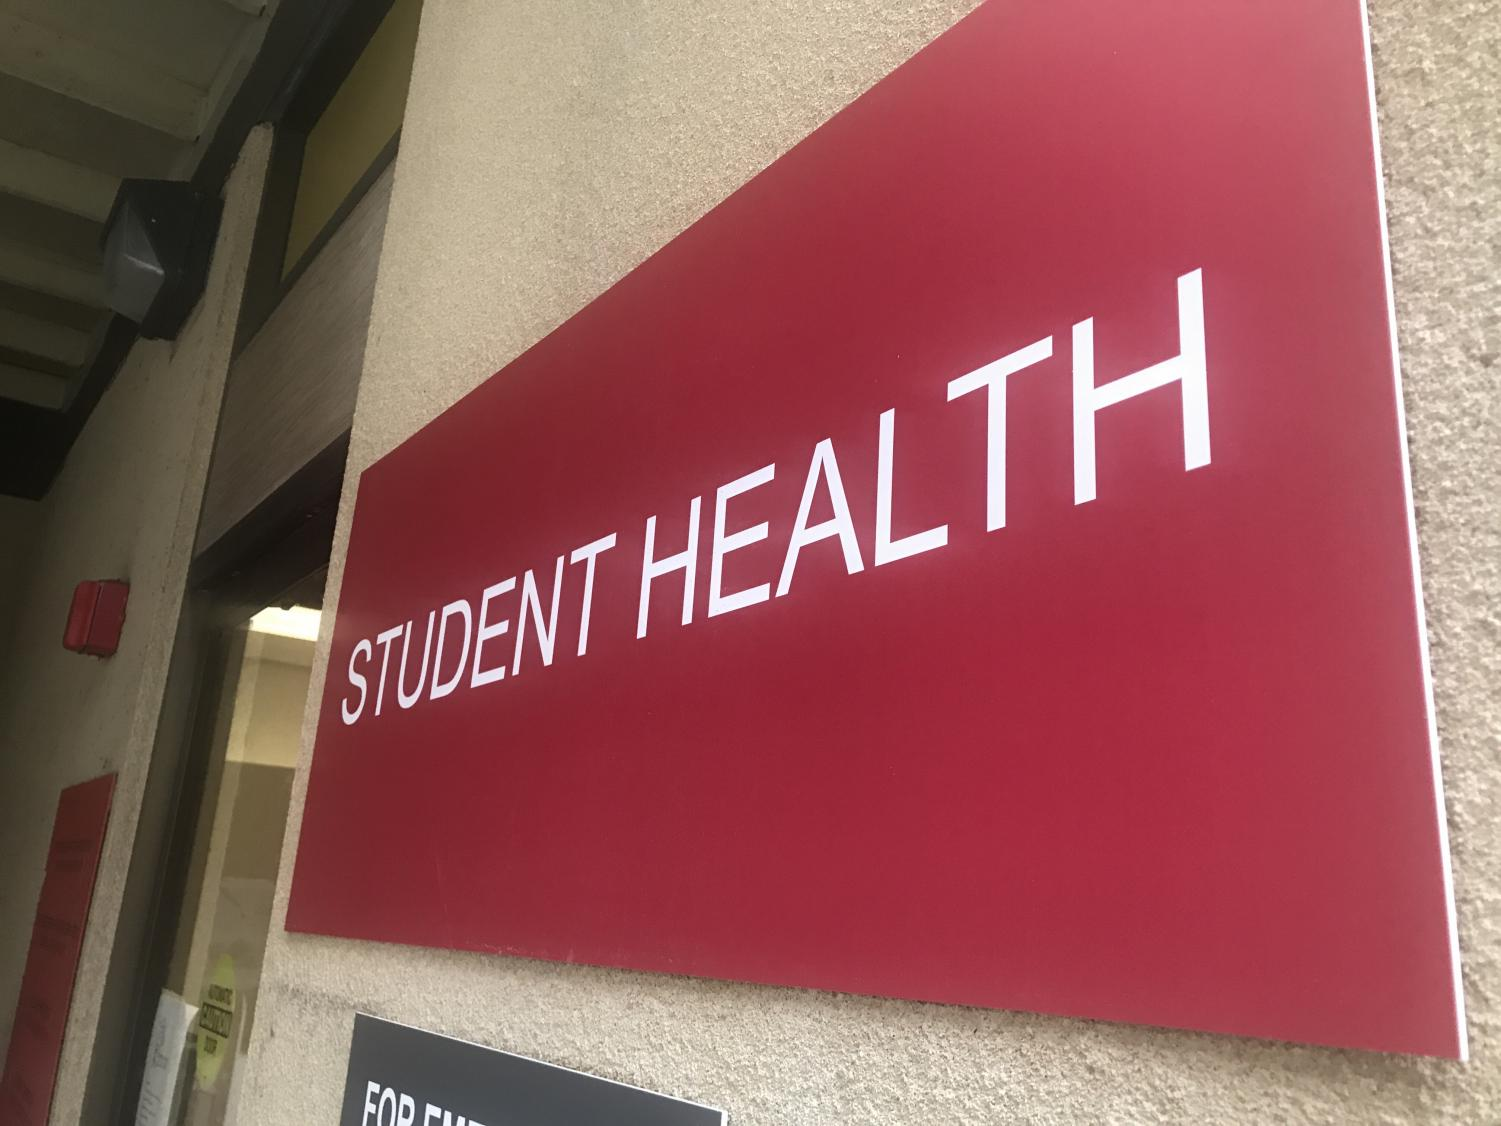 San Diego County health officials will conduct free TB tests at the Student Health Clinic in the B building. By Jonny Rico